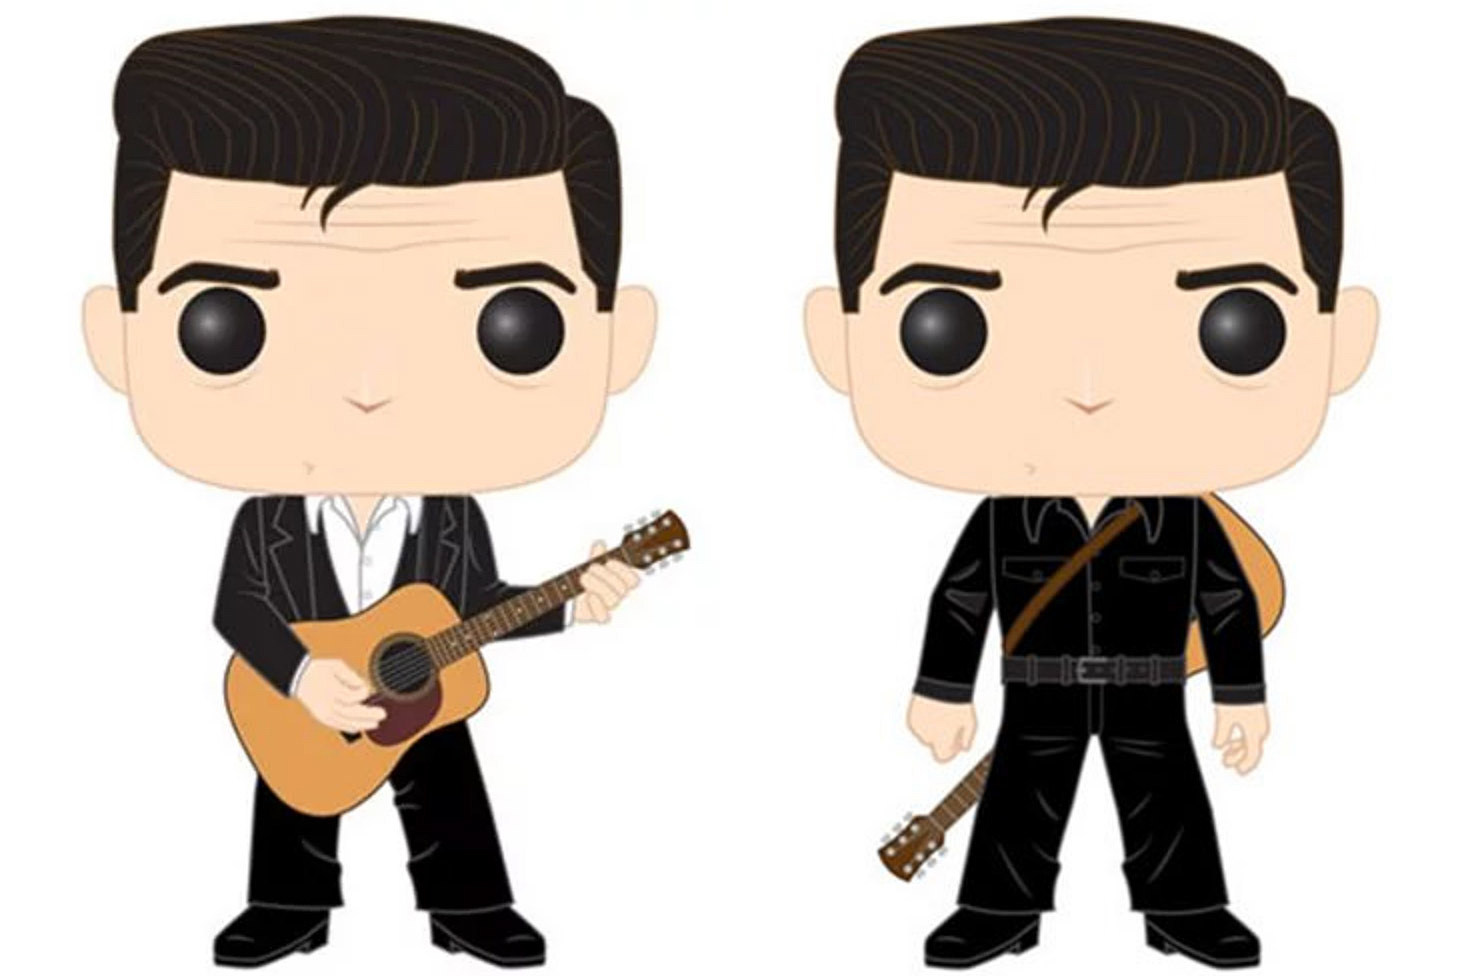 Johnny Cash Is Being Made Into A Funko Pop